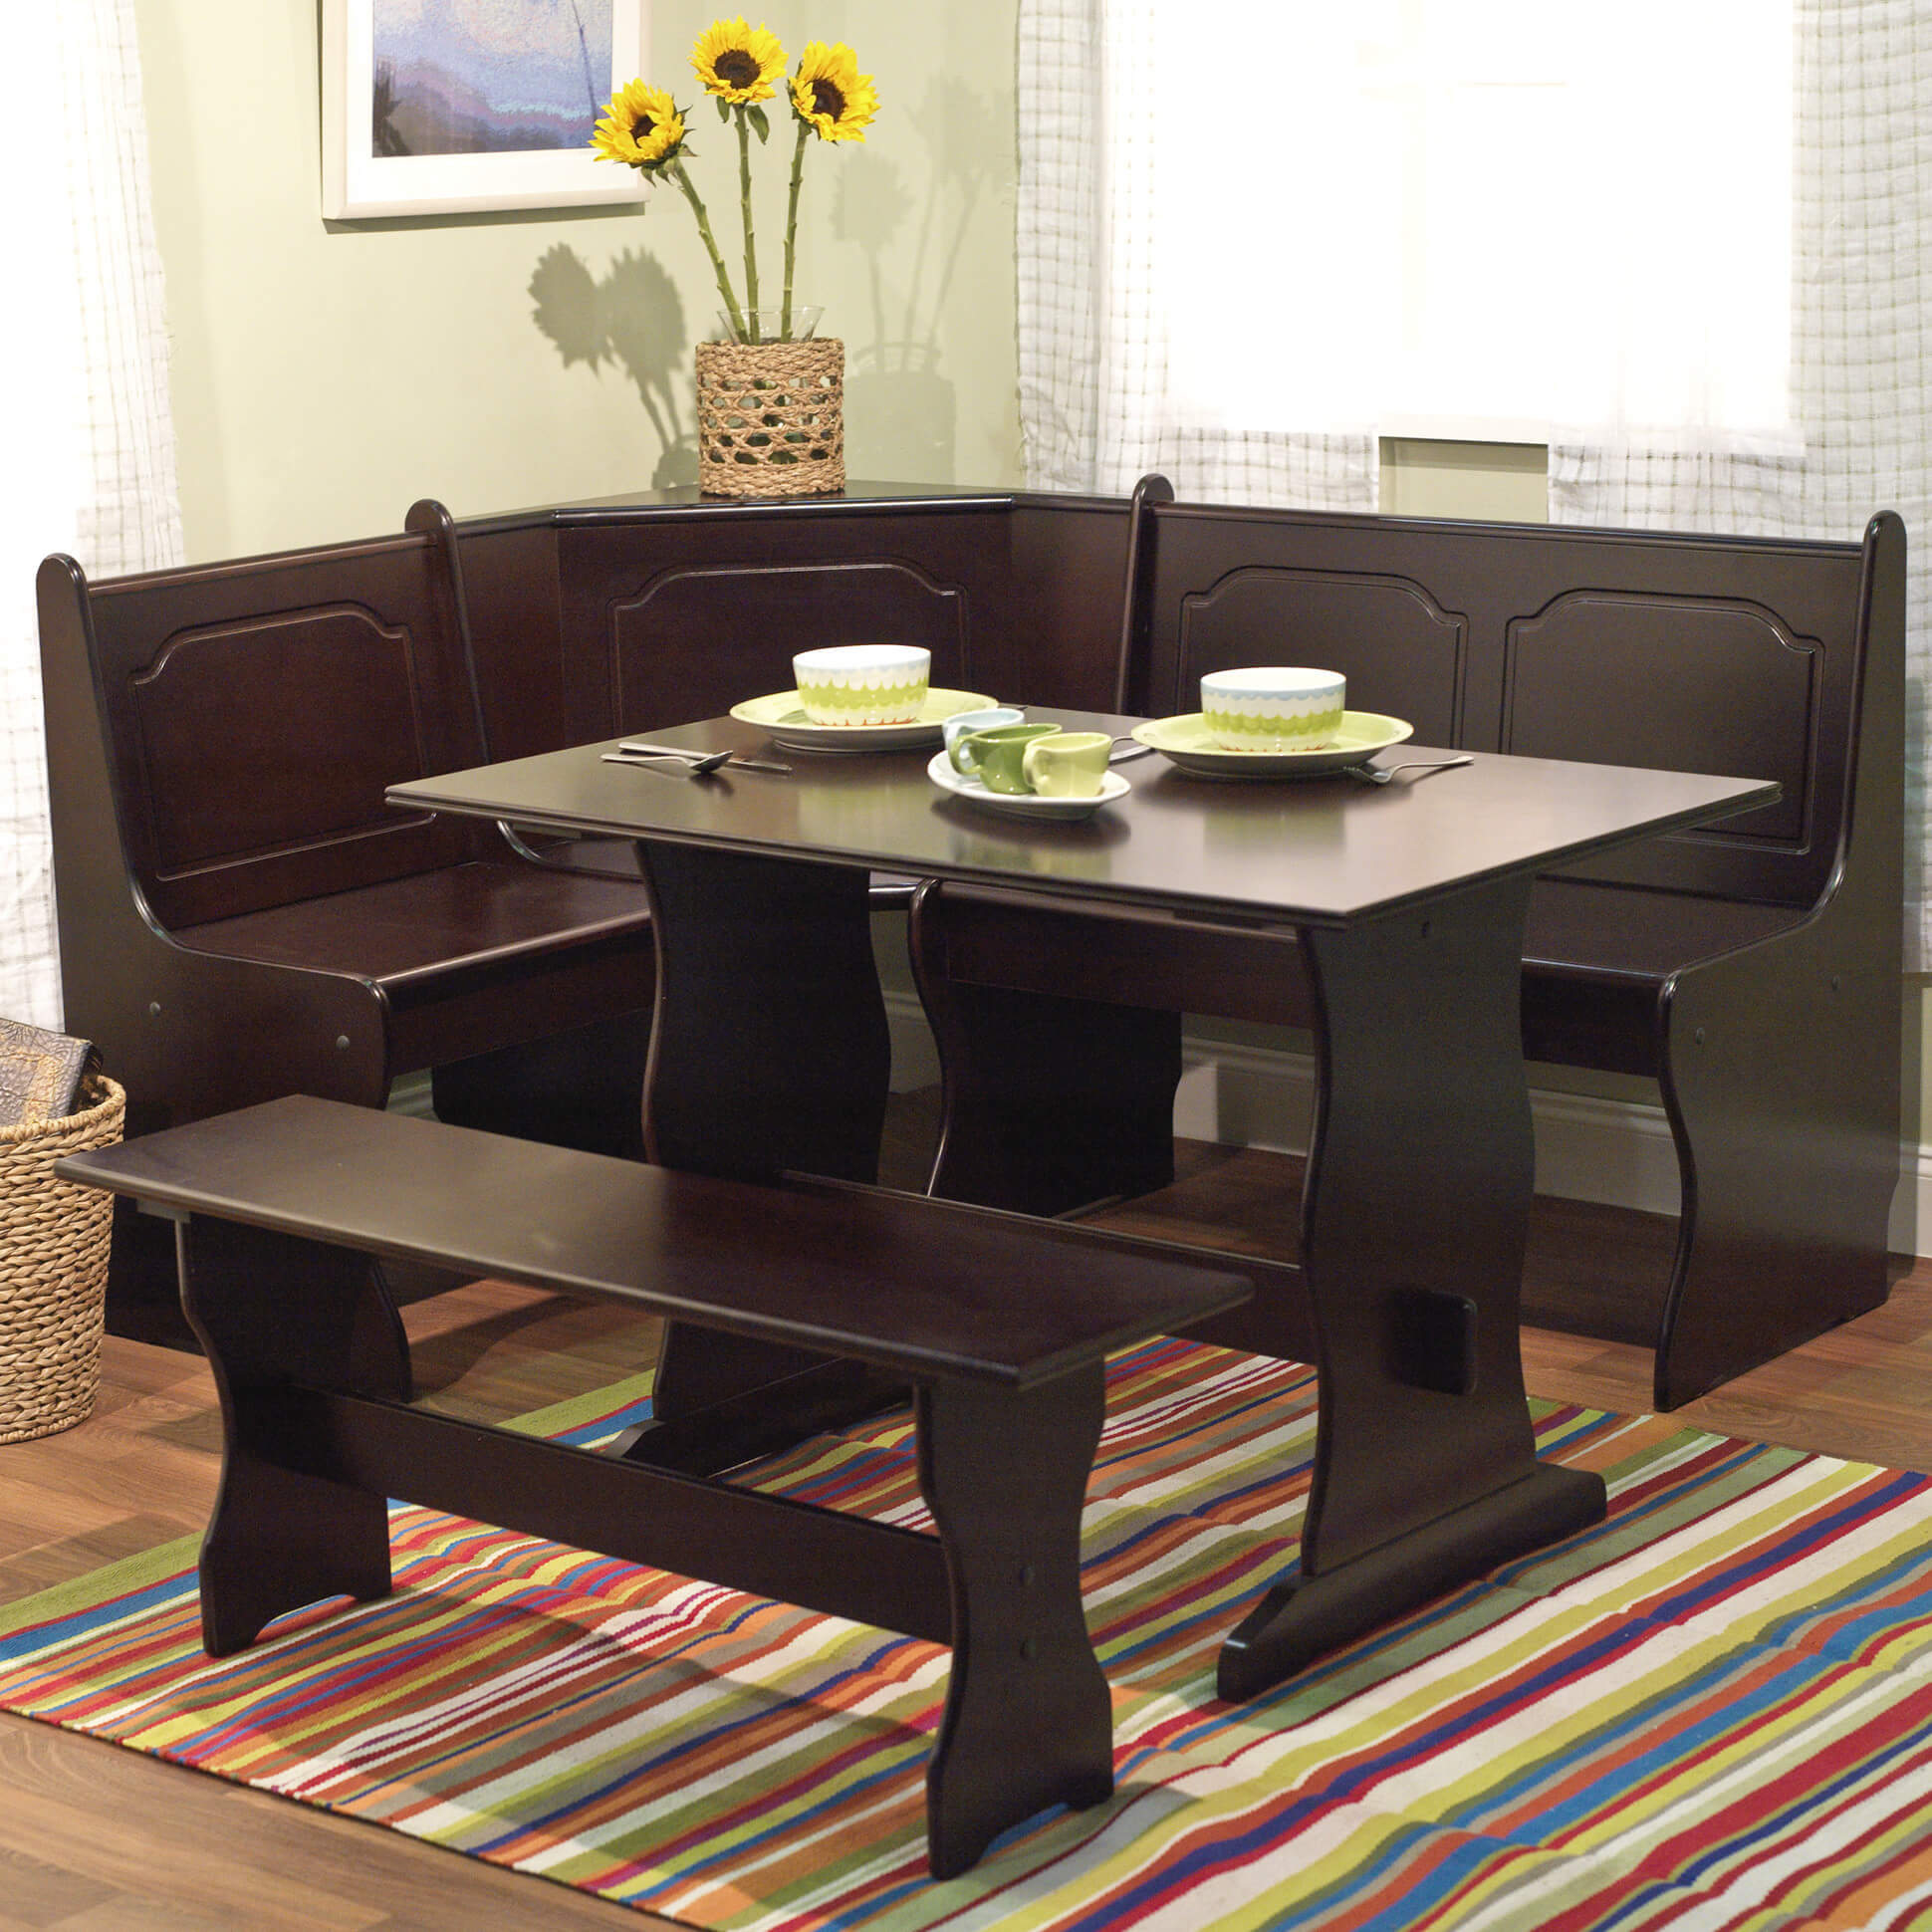 corner kitchen table full size of dining room:cool tall kitchen table sets table and chairs SVBPXHY